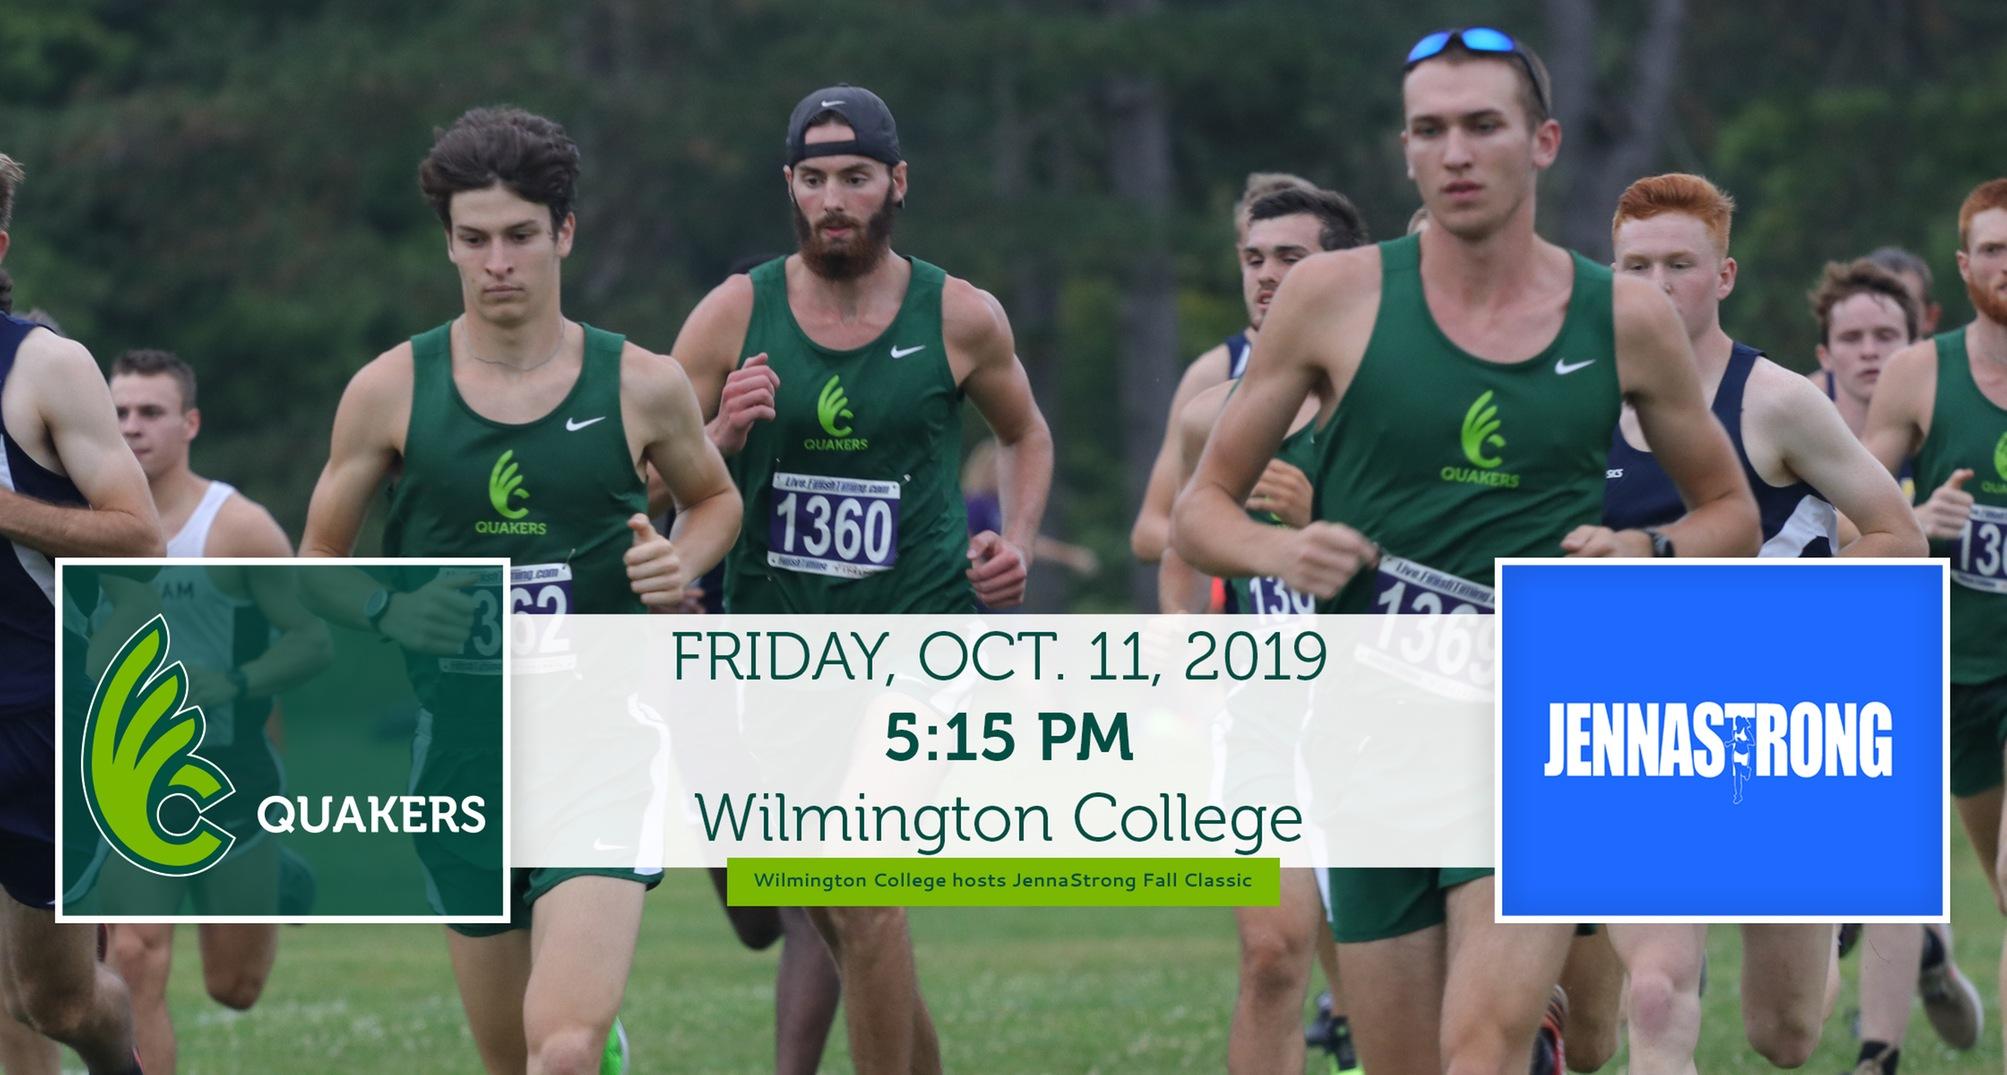 Men's Cross Country to Host JennaStrong Fall Classic Friday